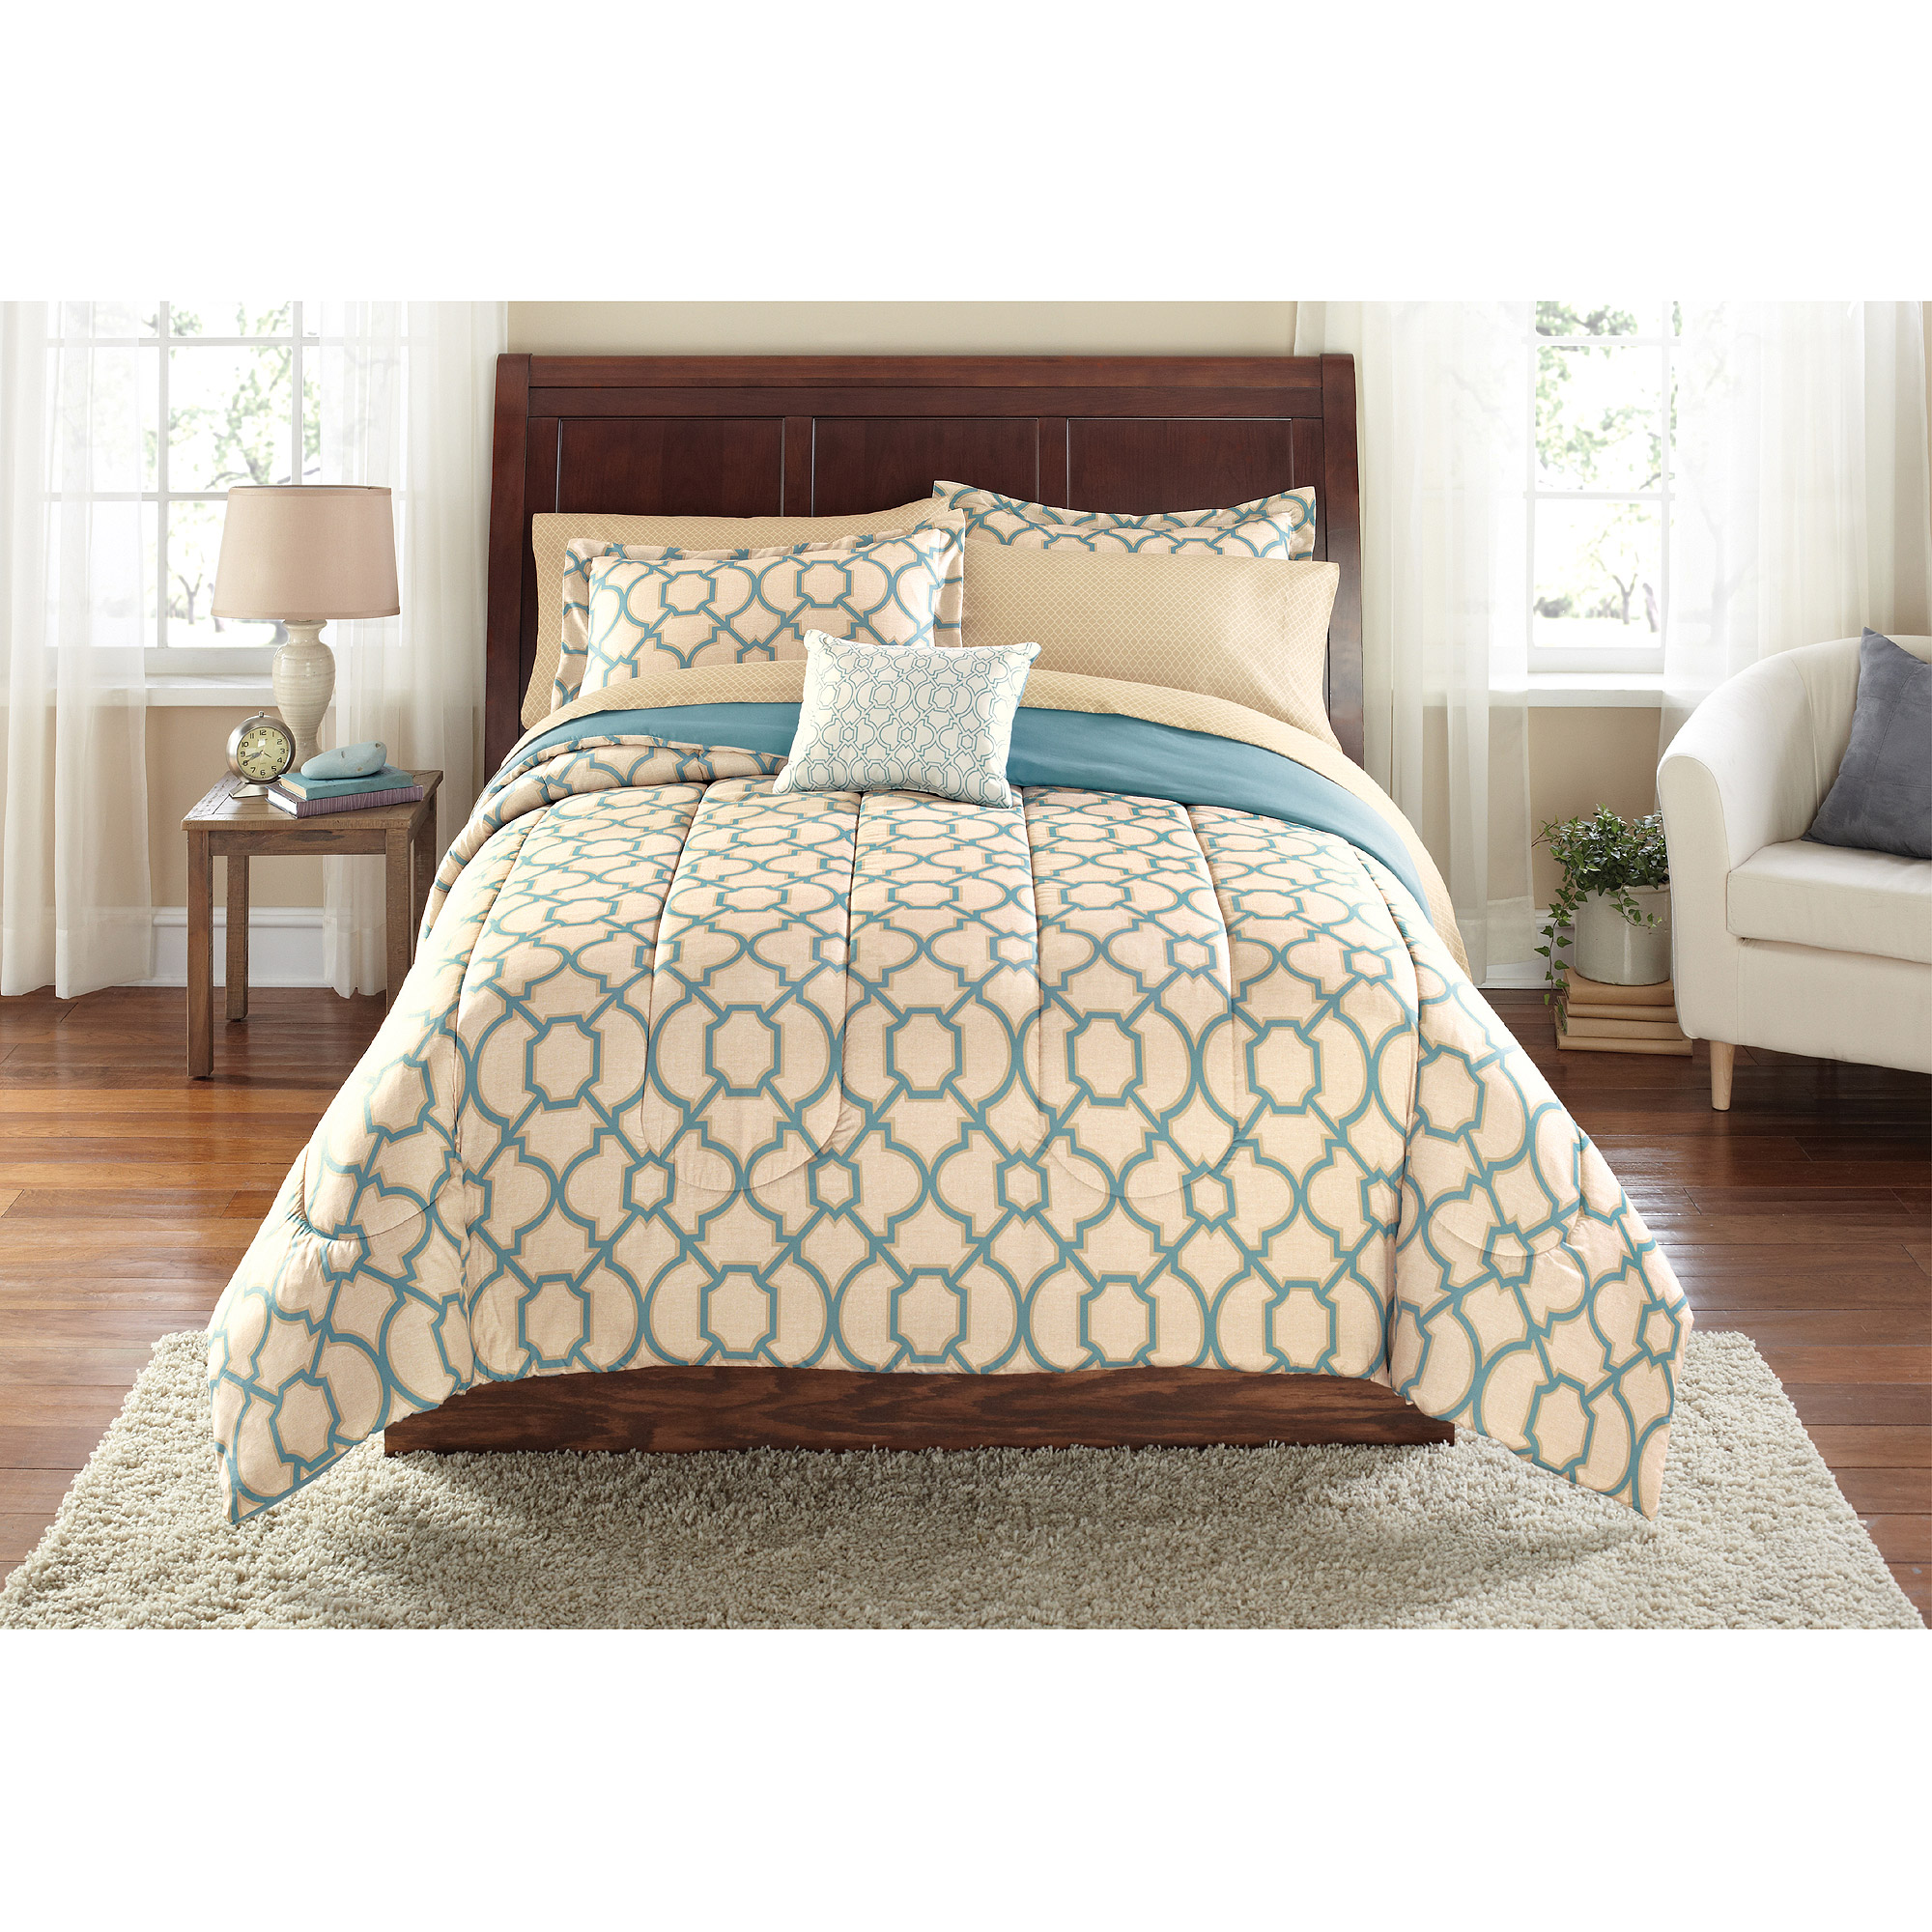 Bedroom Decor And Furniture teens' room - every day low prices | walmart